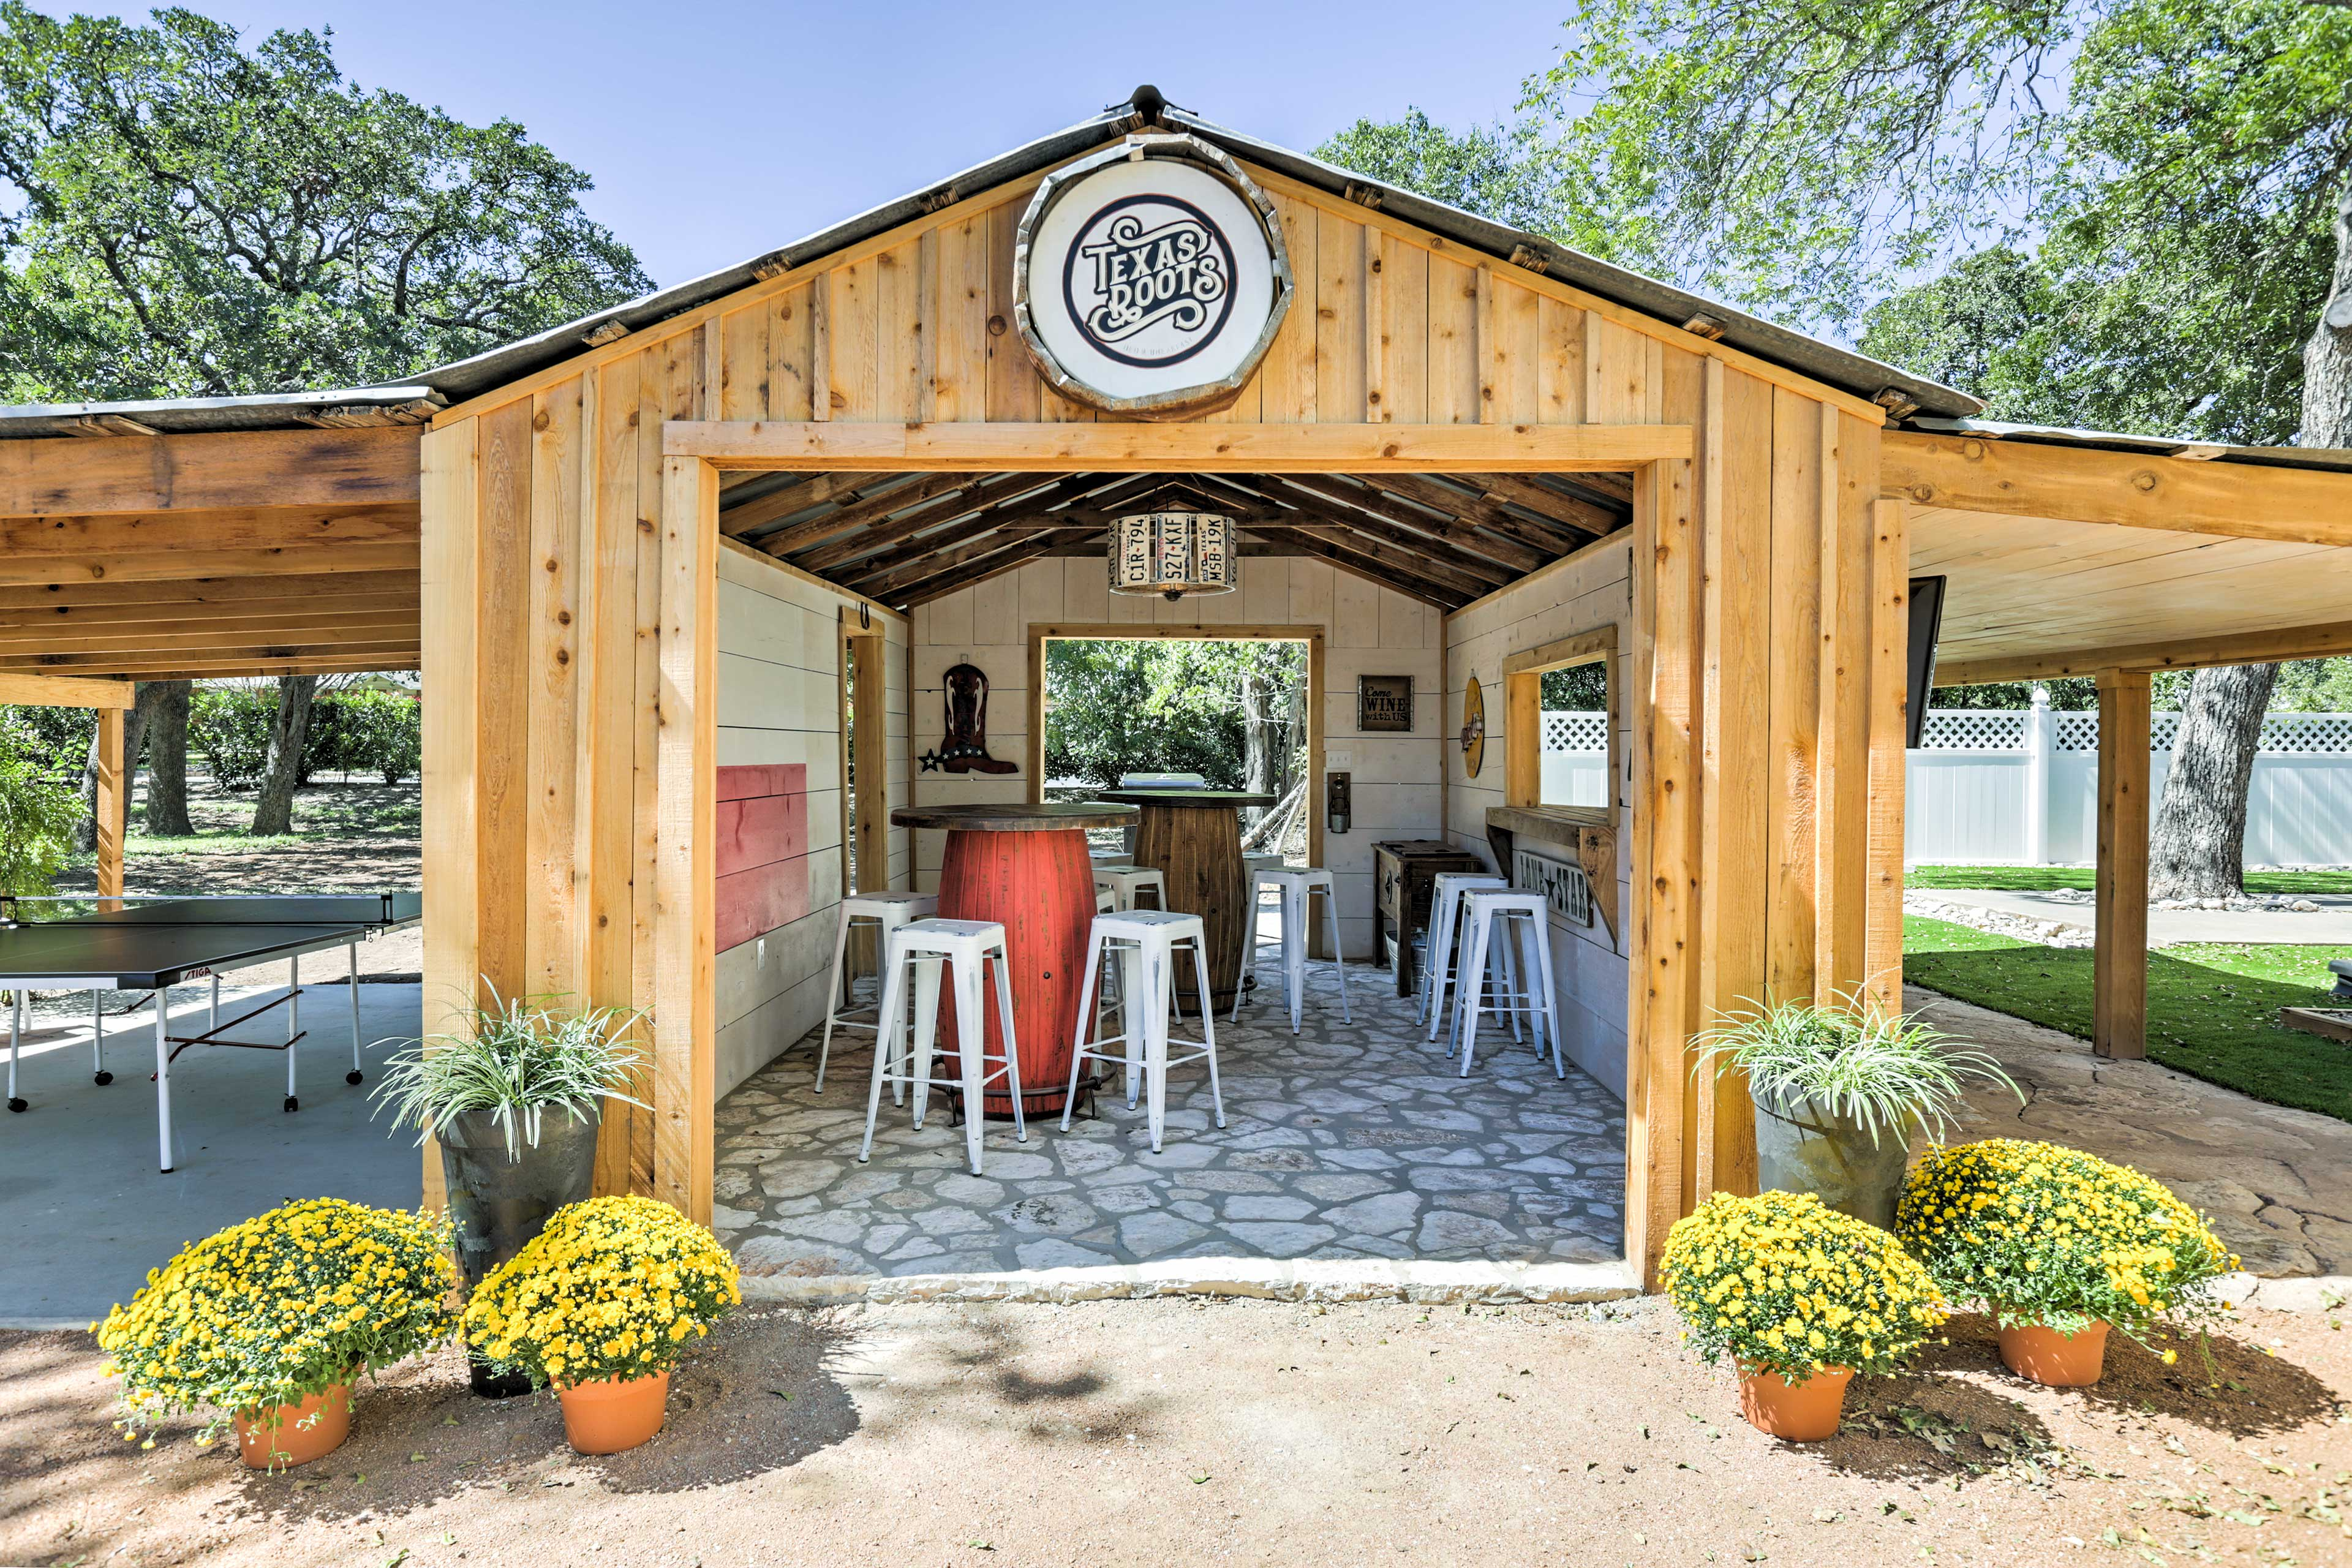 Get together and share laughter in the party barn.